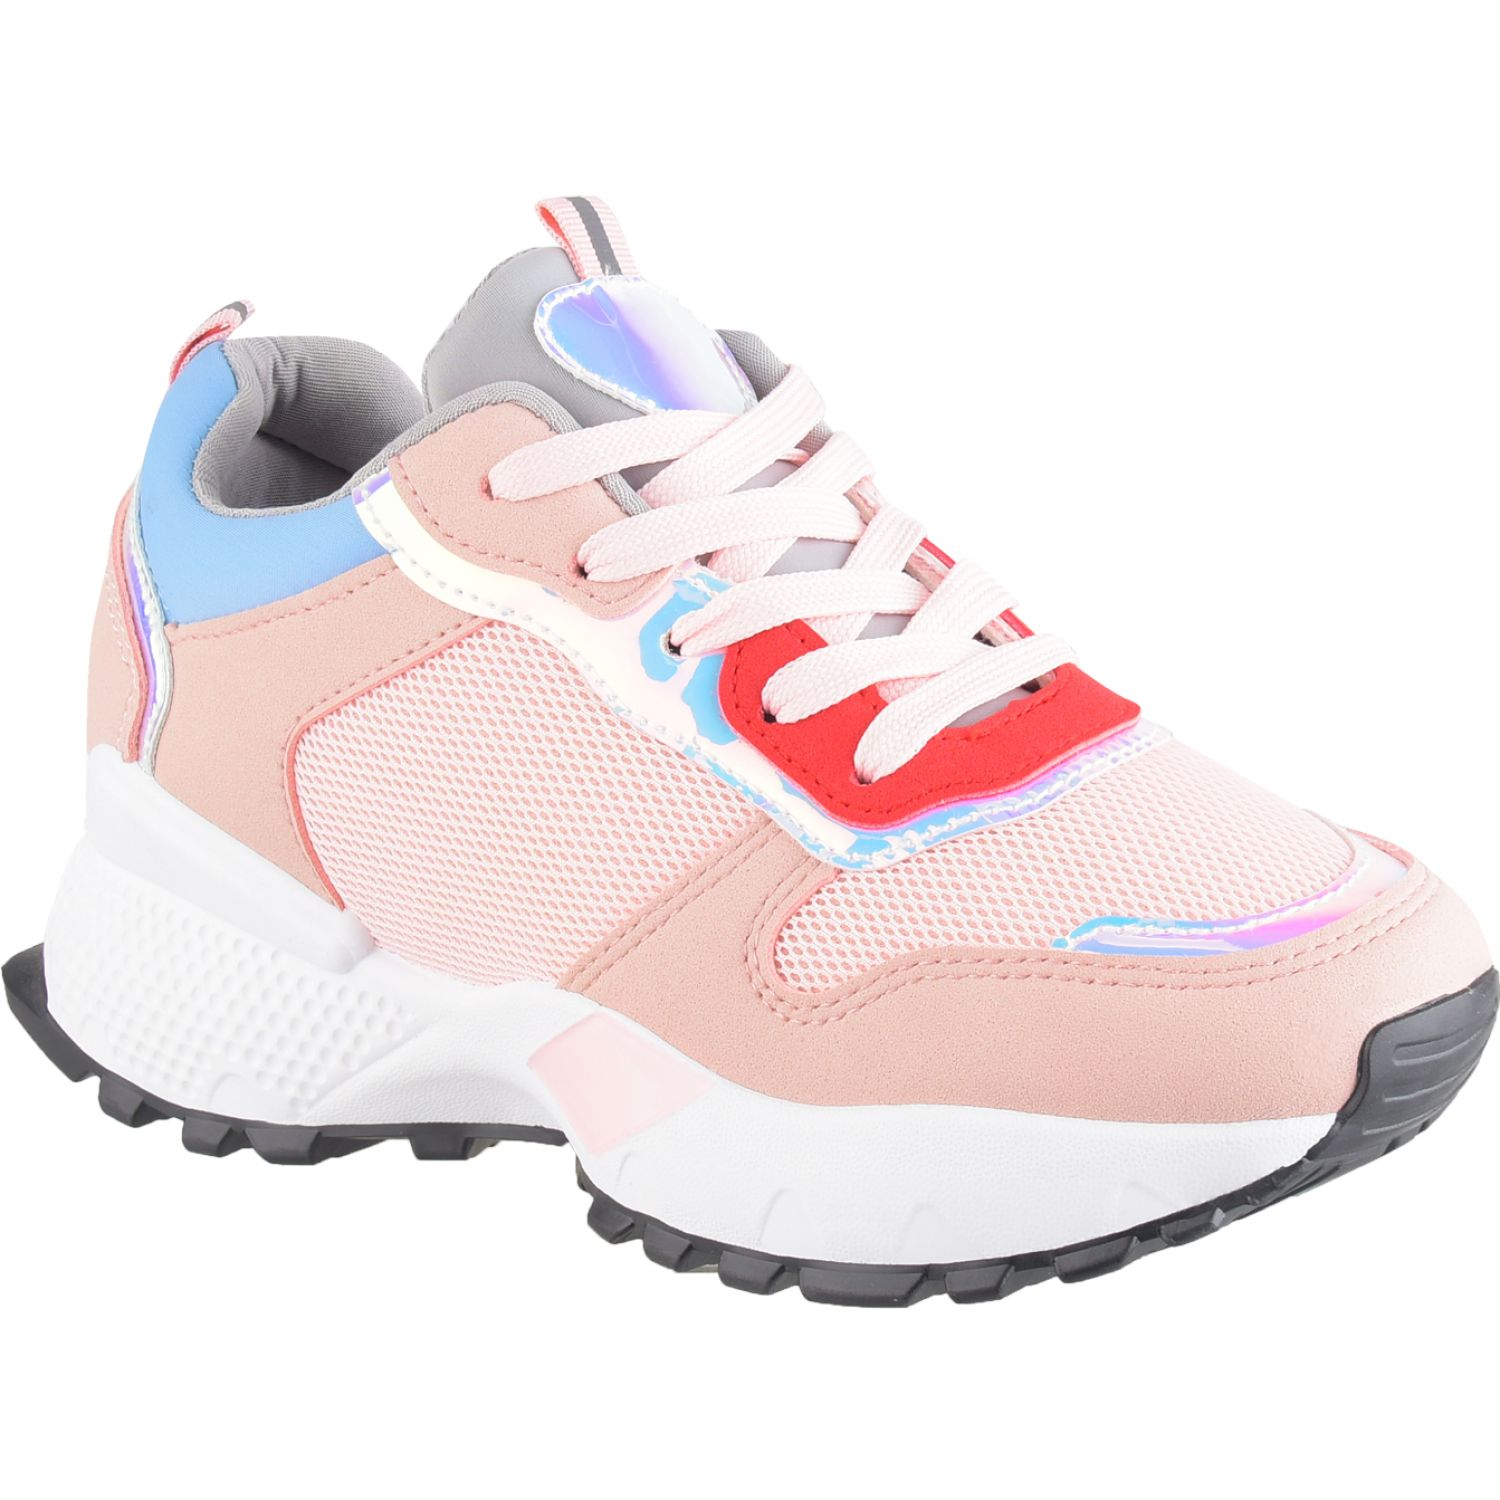 Platanitos z 107 Rosado Zapatillas Fashion